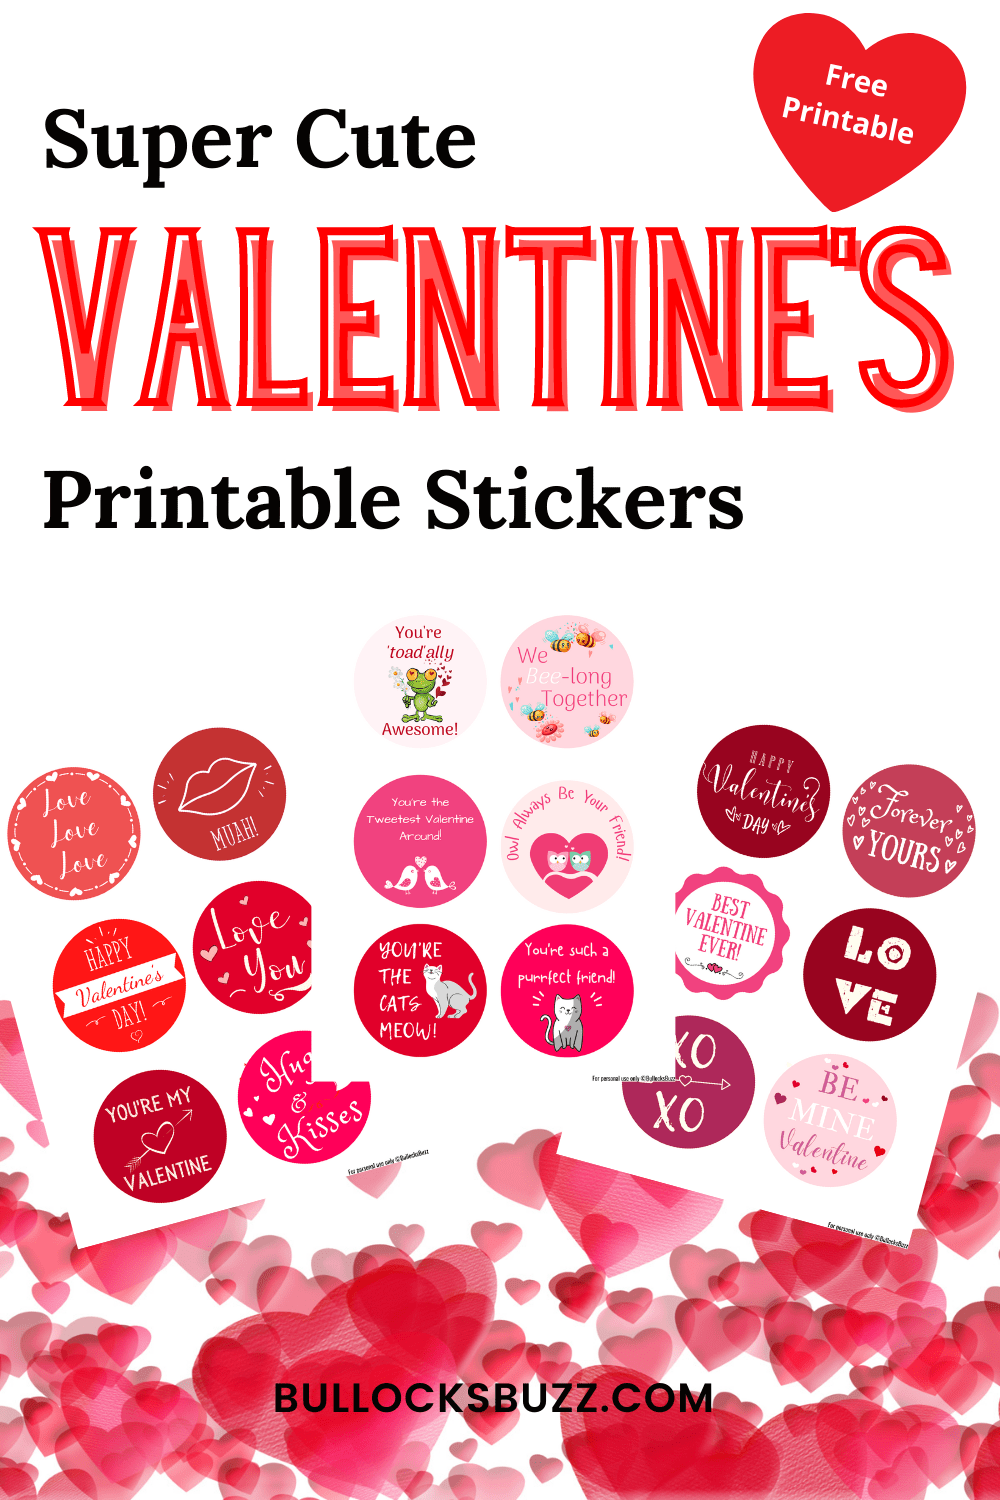 These adorable printable Valentine's Day Stickers are a cute way to add a little love to cards, gifts, and treats on the sweetest day of the year!